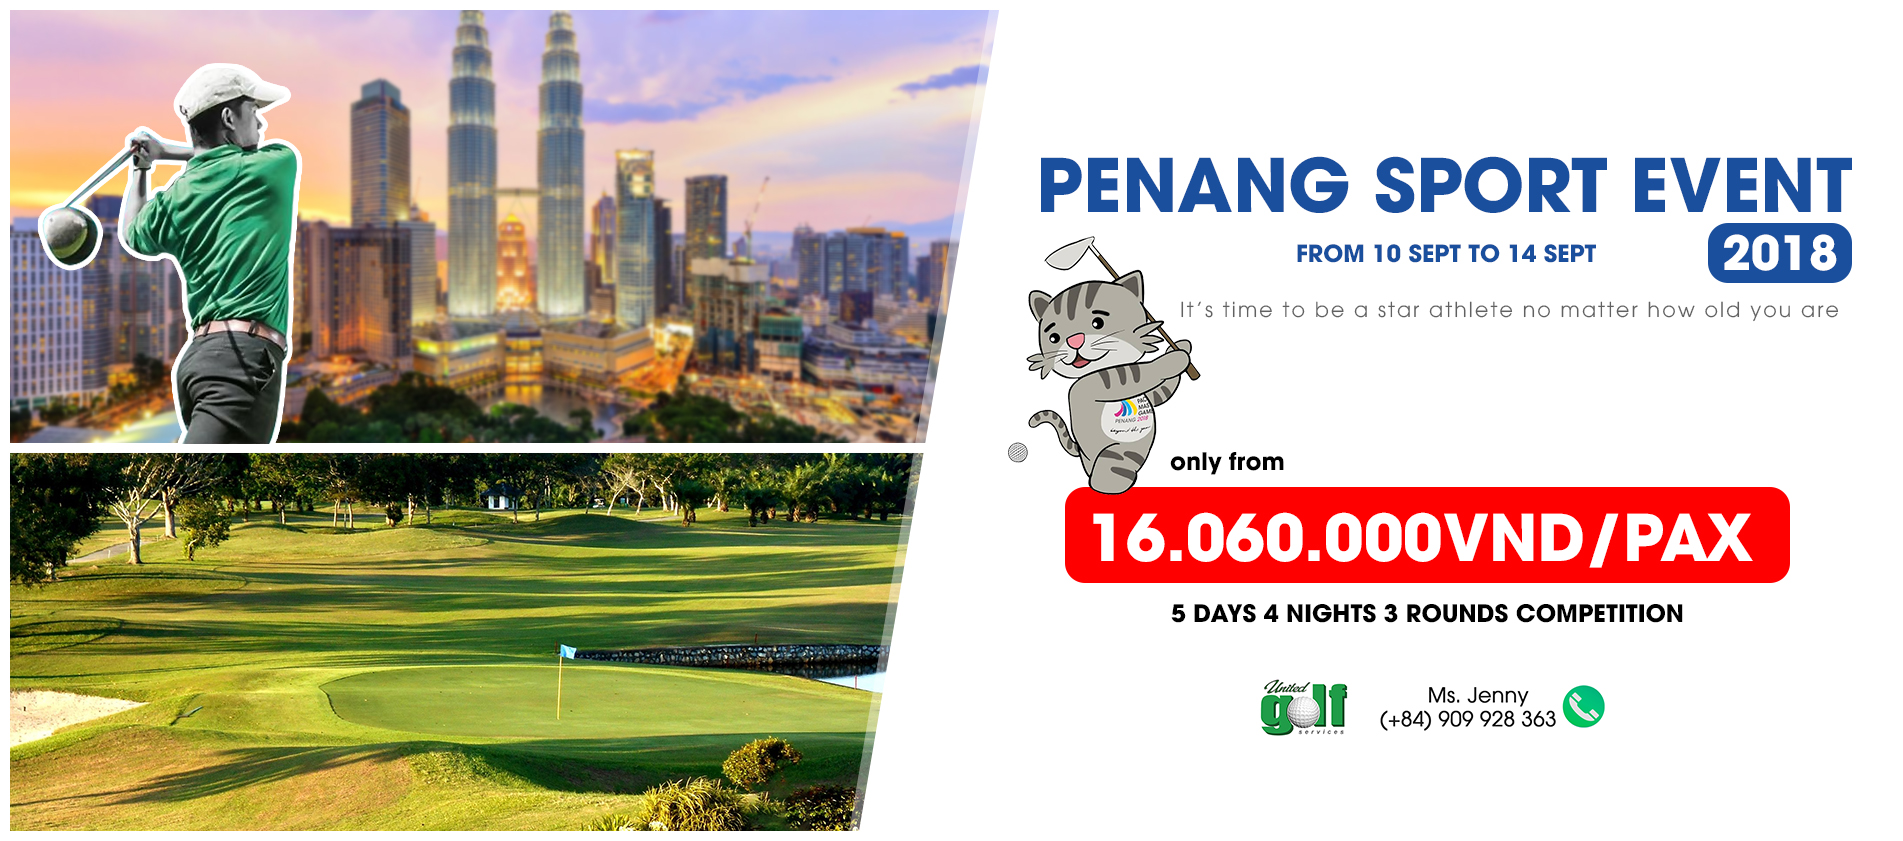 Penang Asia Pacific Masters game 2018  (5 Days 4 Nights 3 Golf Rounds)